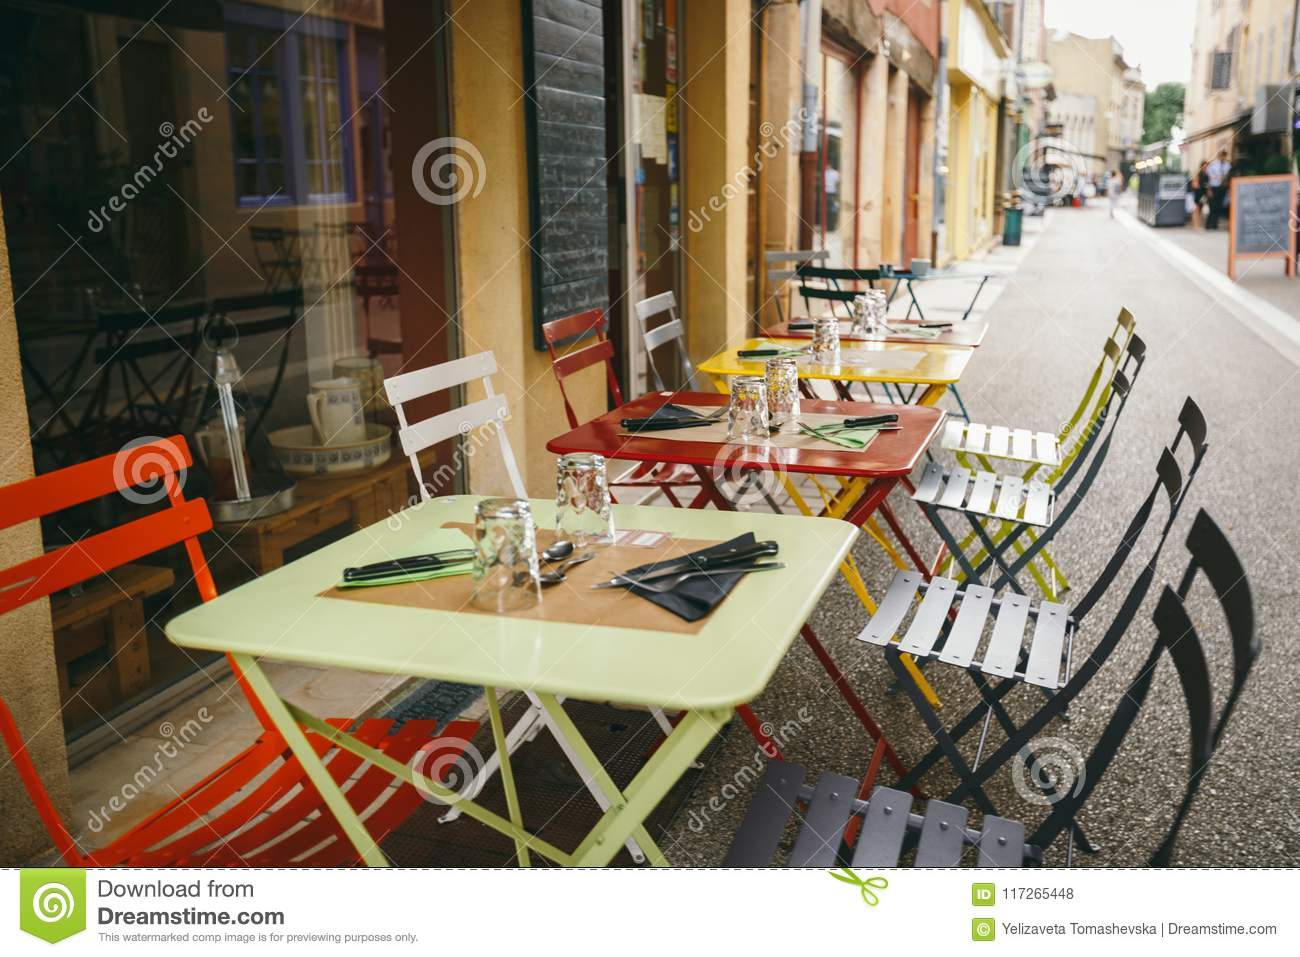 Theme Cafes And Restaurants Exterior Summer Terrace Of Bright Colors Of Street Cafe Shop In Europe In France Preserved Tables Wi Stock Photo Image Of Rustic Diner 117265448